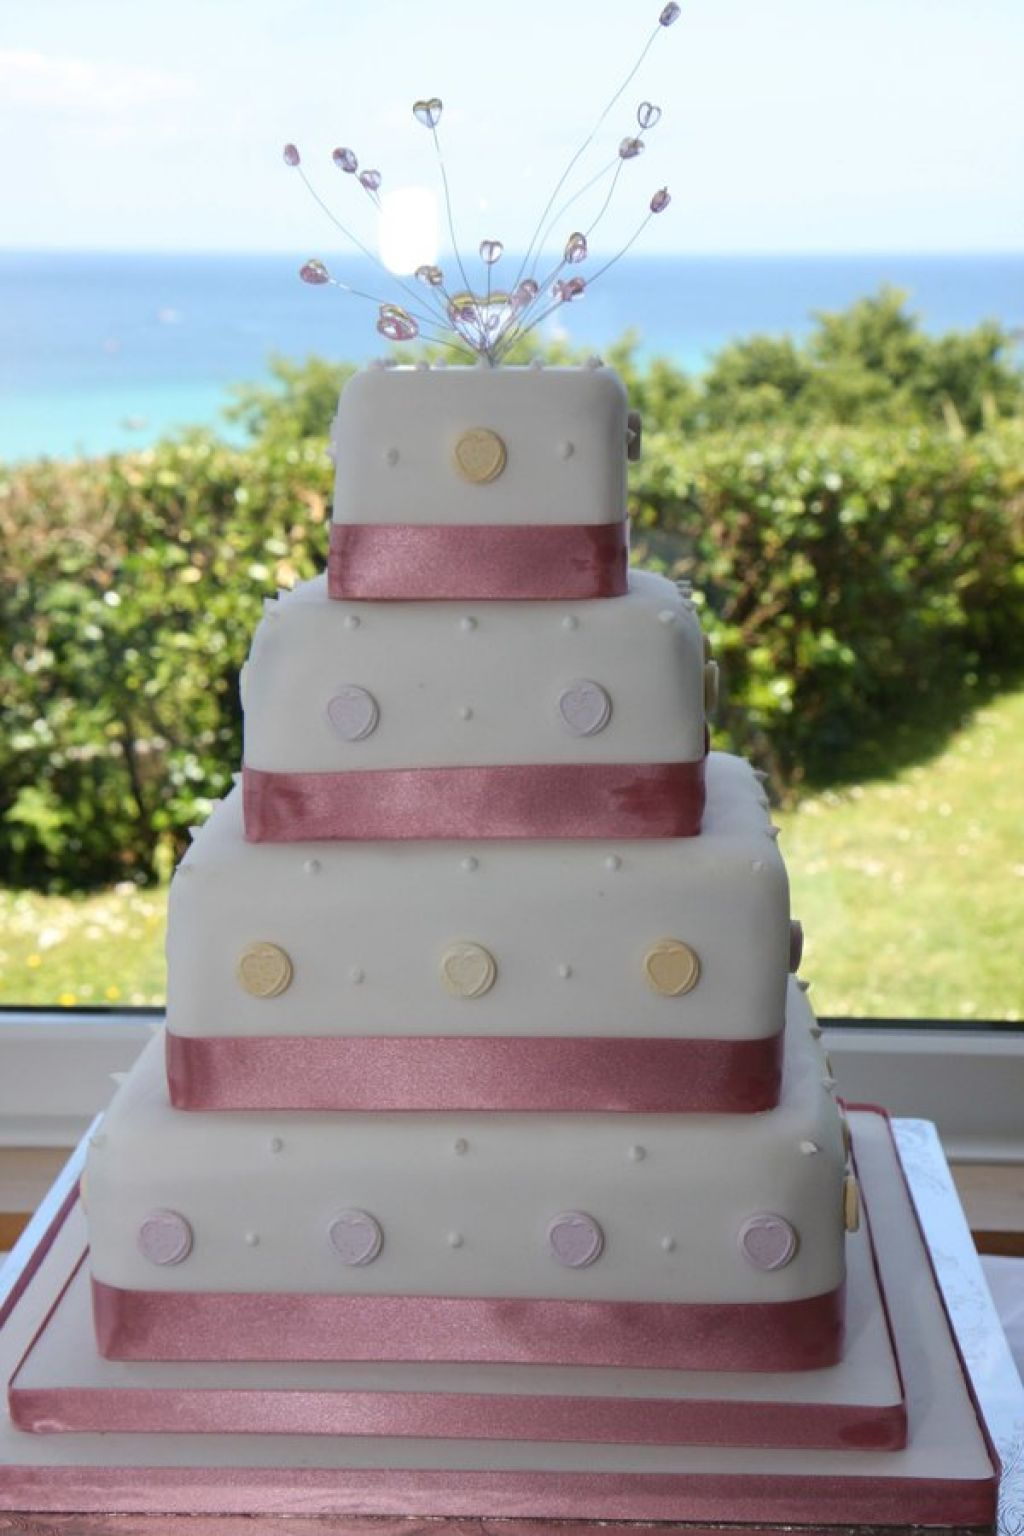 Pictures of my homemade wedding cake photo gallery